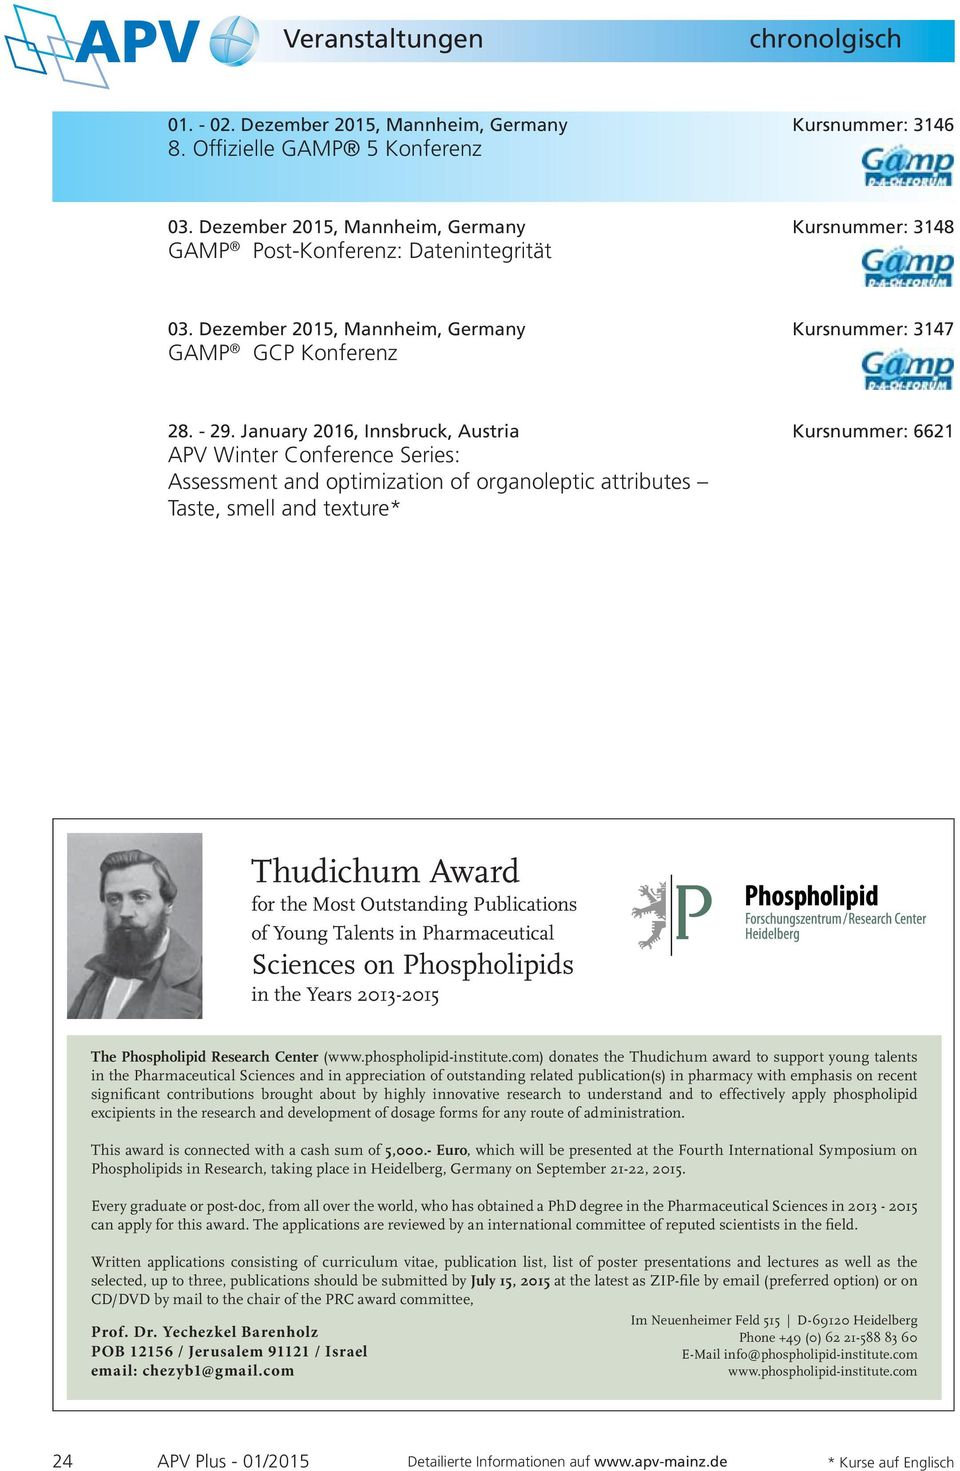 January 2016, Innsbruck, Austria Kursnummer: 6621 APV Winter Conference Series: Assessment and optimization of organoleptic attributes Taste, smell and texture* Thudichum Award for the Most